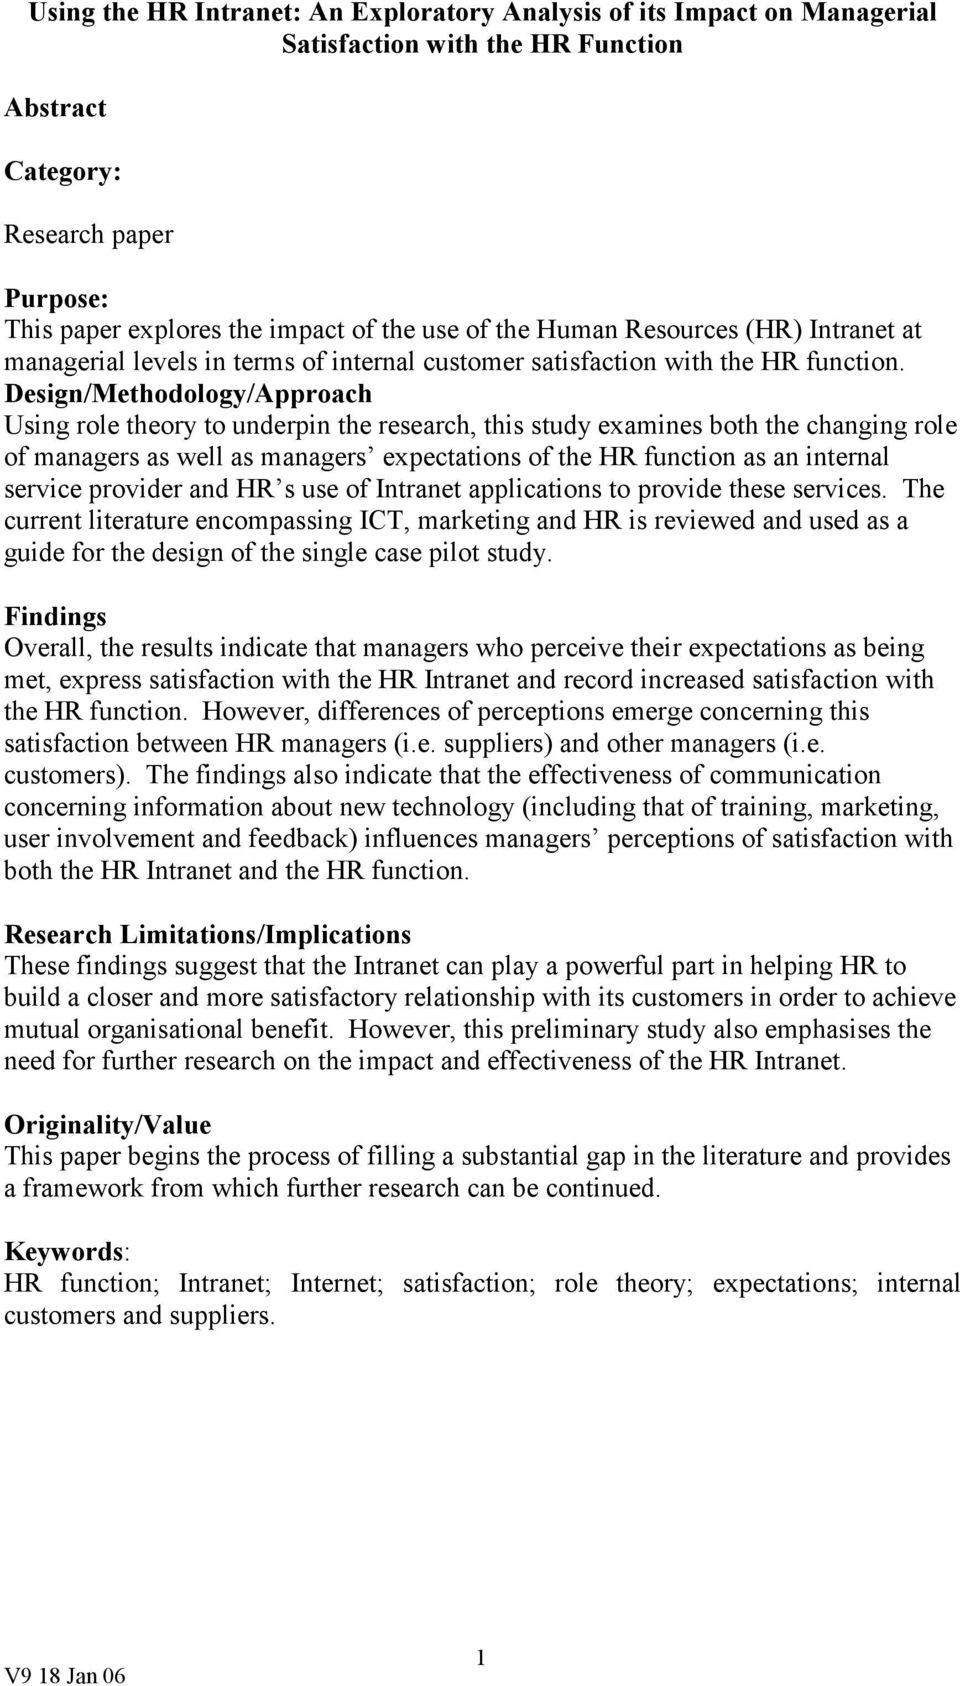 Design/Methodology/Approach Using role theory to underpin the research, this study examines both the changing role of managers as well as managers expectations of the HR function as an internal